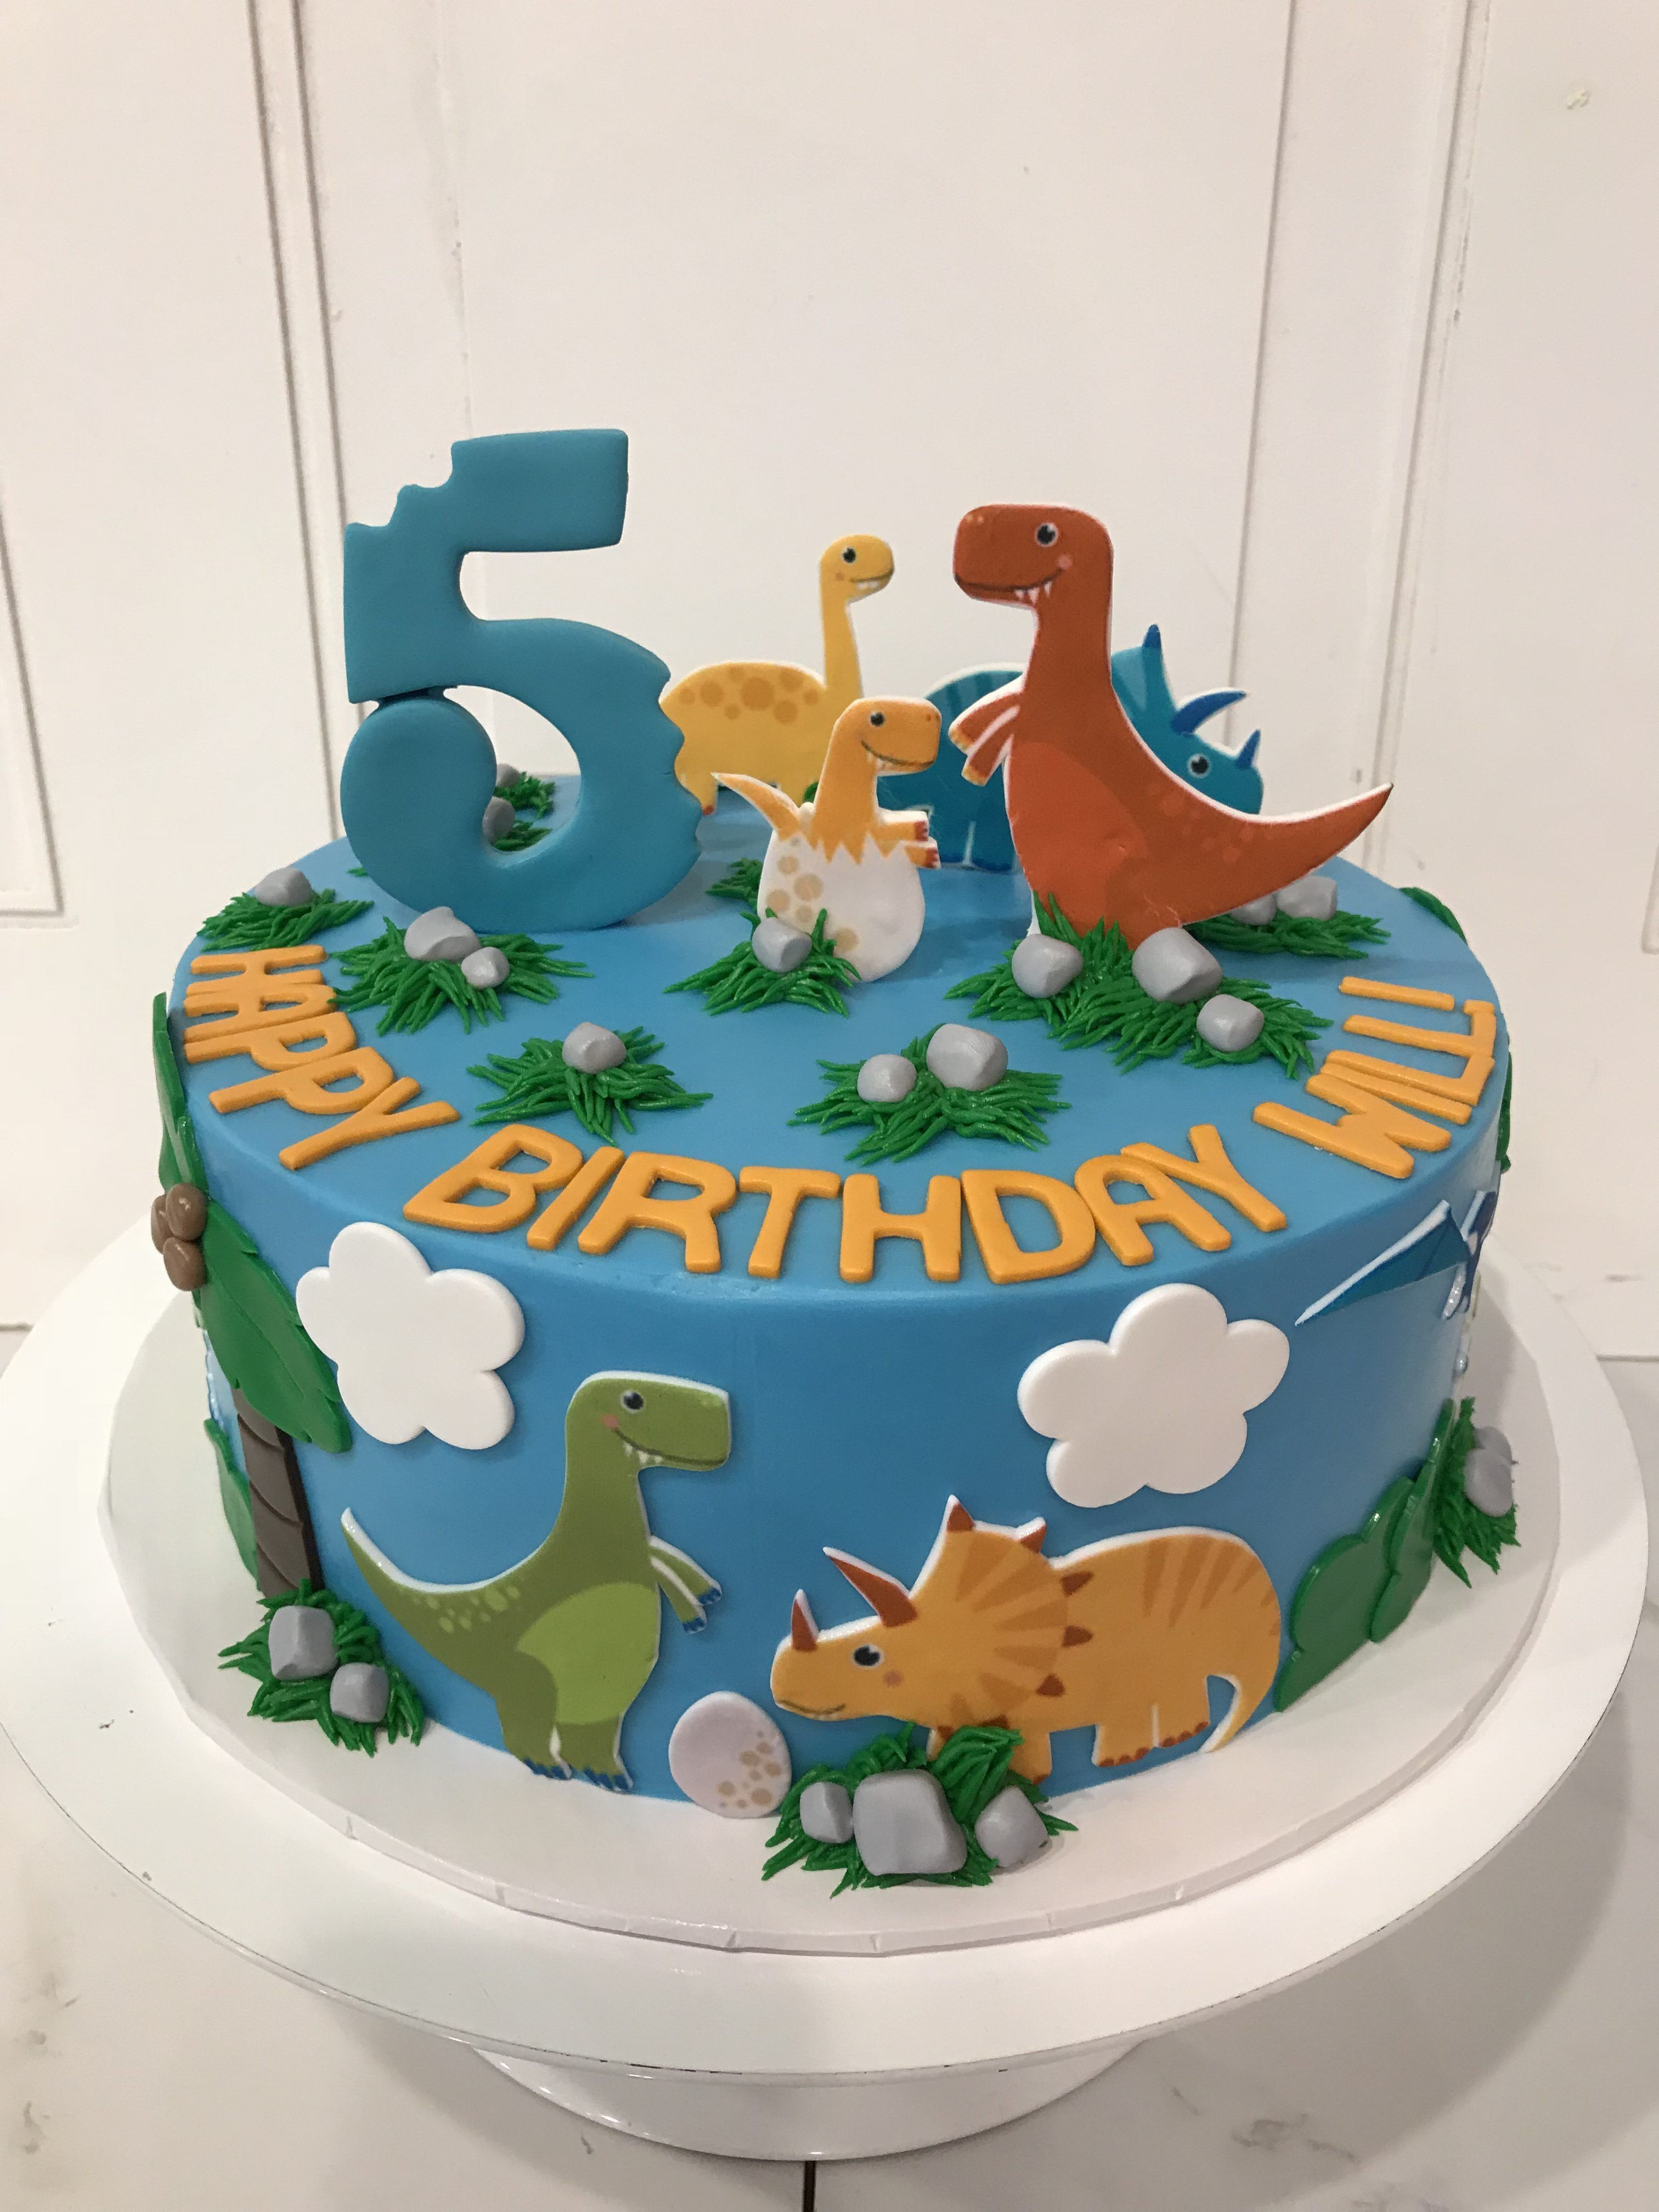 Phenomenal Childrens Birthday Cakes That Are Unique And Delicious With Personalised Birthday Cards Sponlily Jamesorg